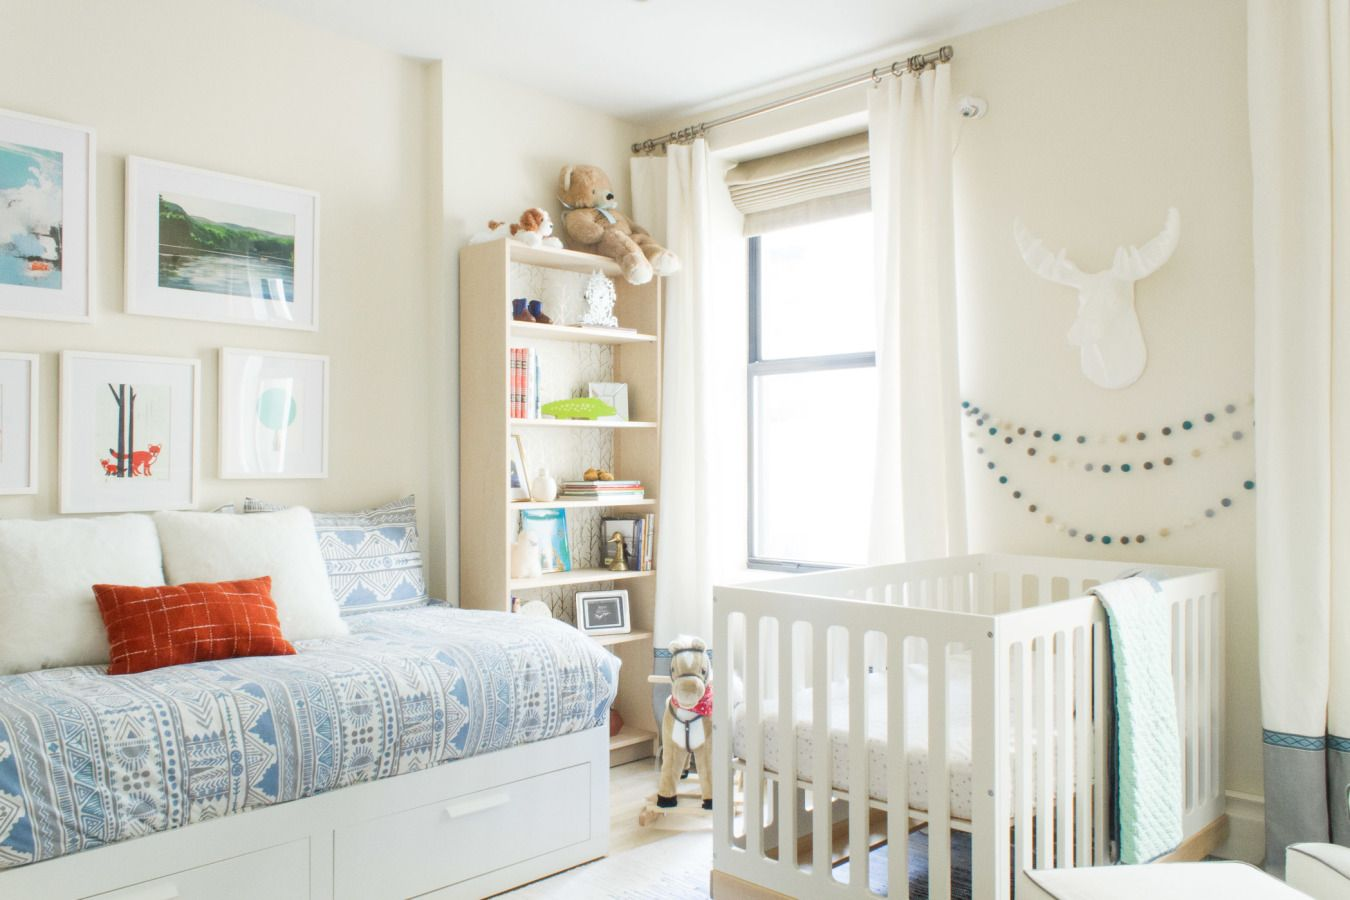 Marvelous Peaceful Modern Nursery In New York With Mountain Murals In Shades Of  Blue Grey.